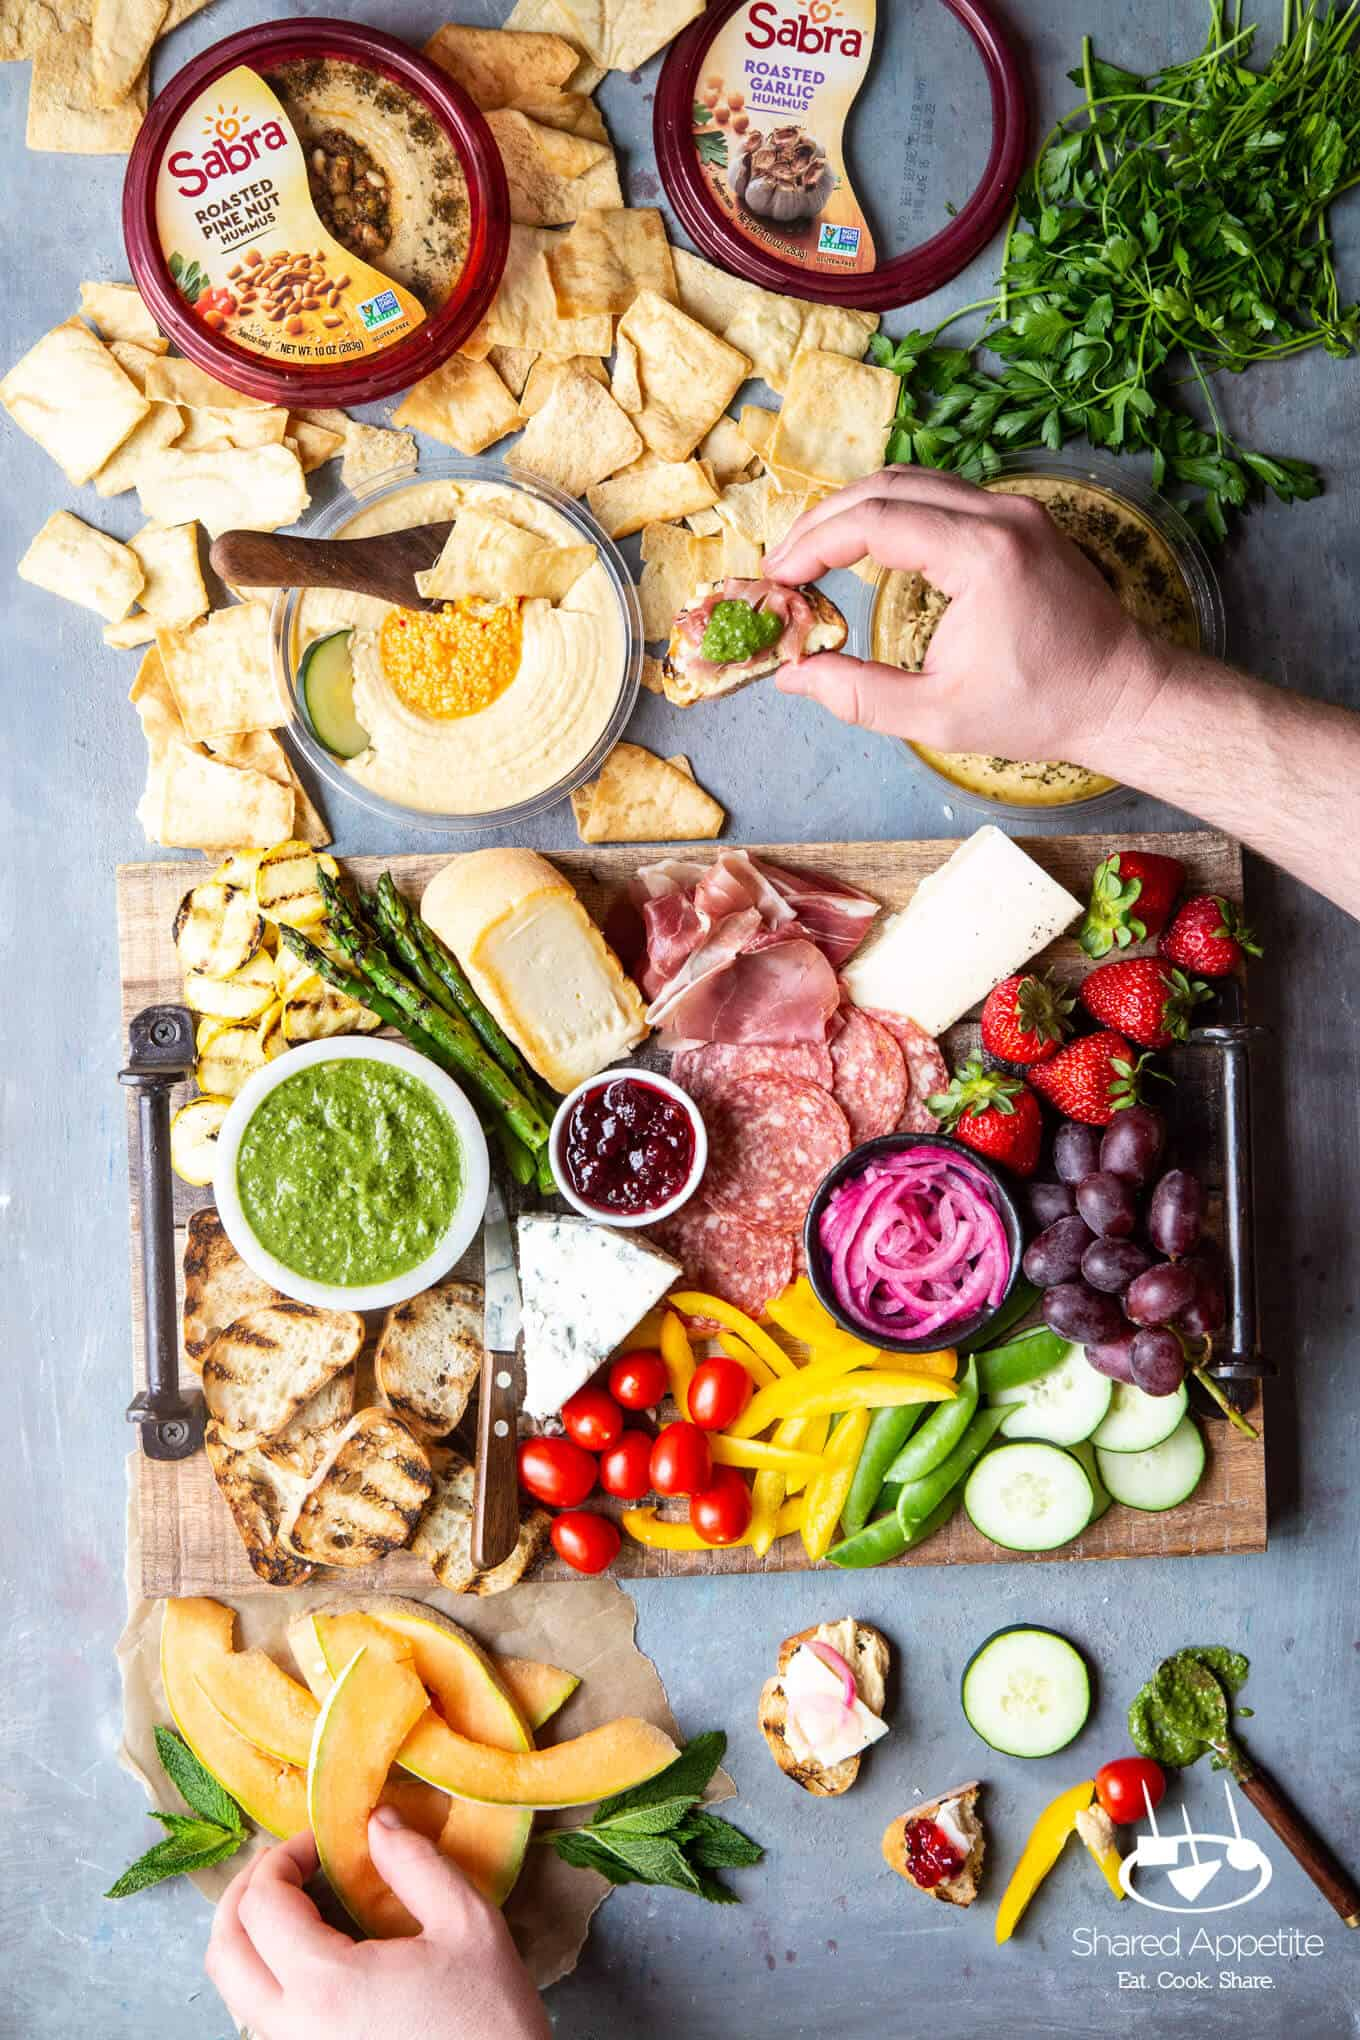 building crostini on a Sabra Hummus for How To Build A Summer Charcuterie Board | sharedappetite.com